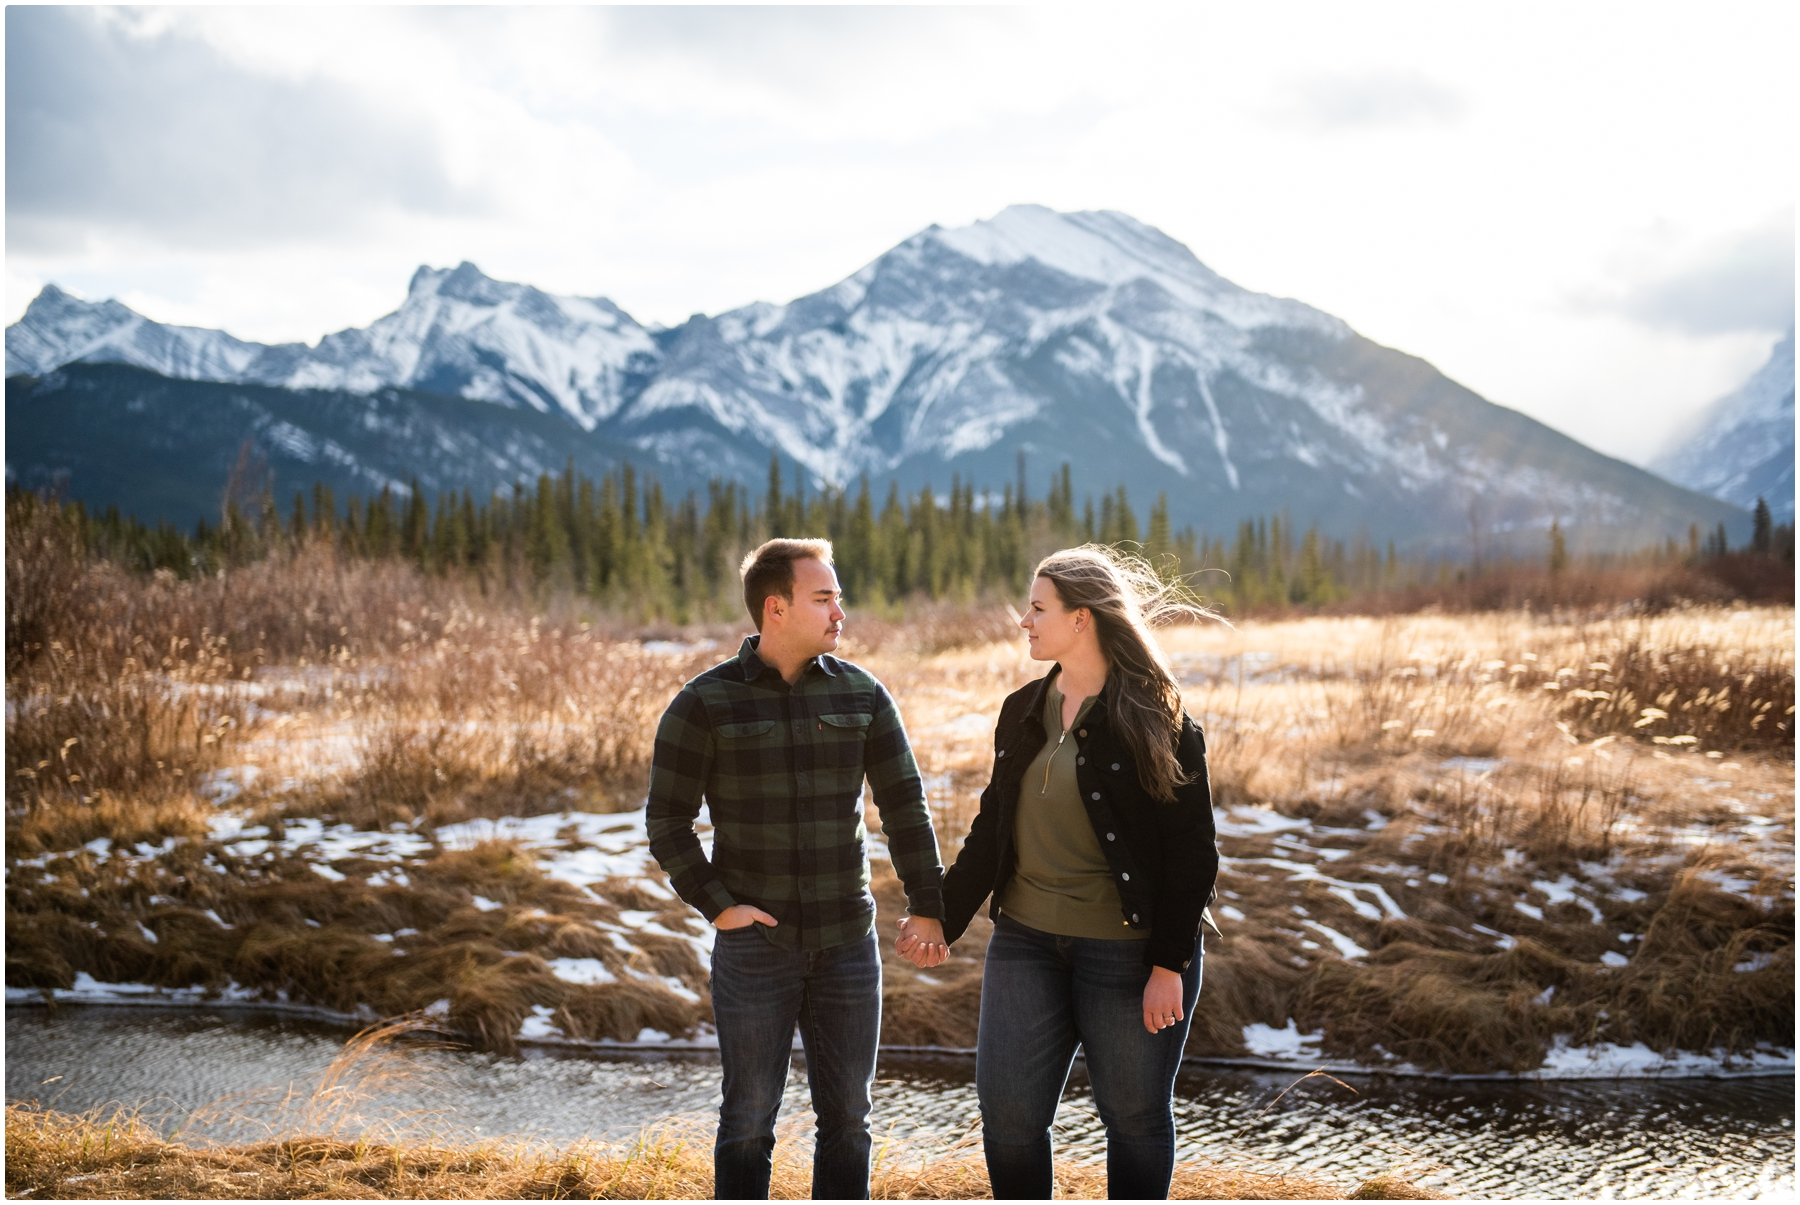 Calgary Engagement Photographer - Kananaskis Adventure Engagement Session